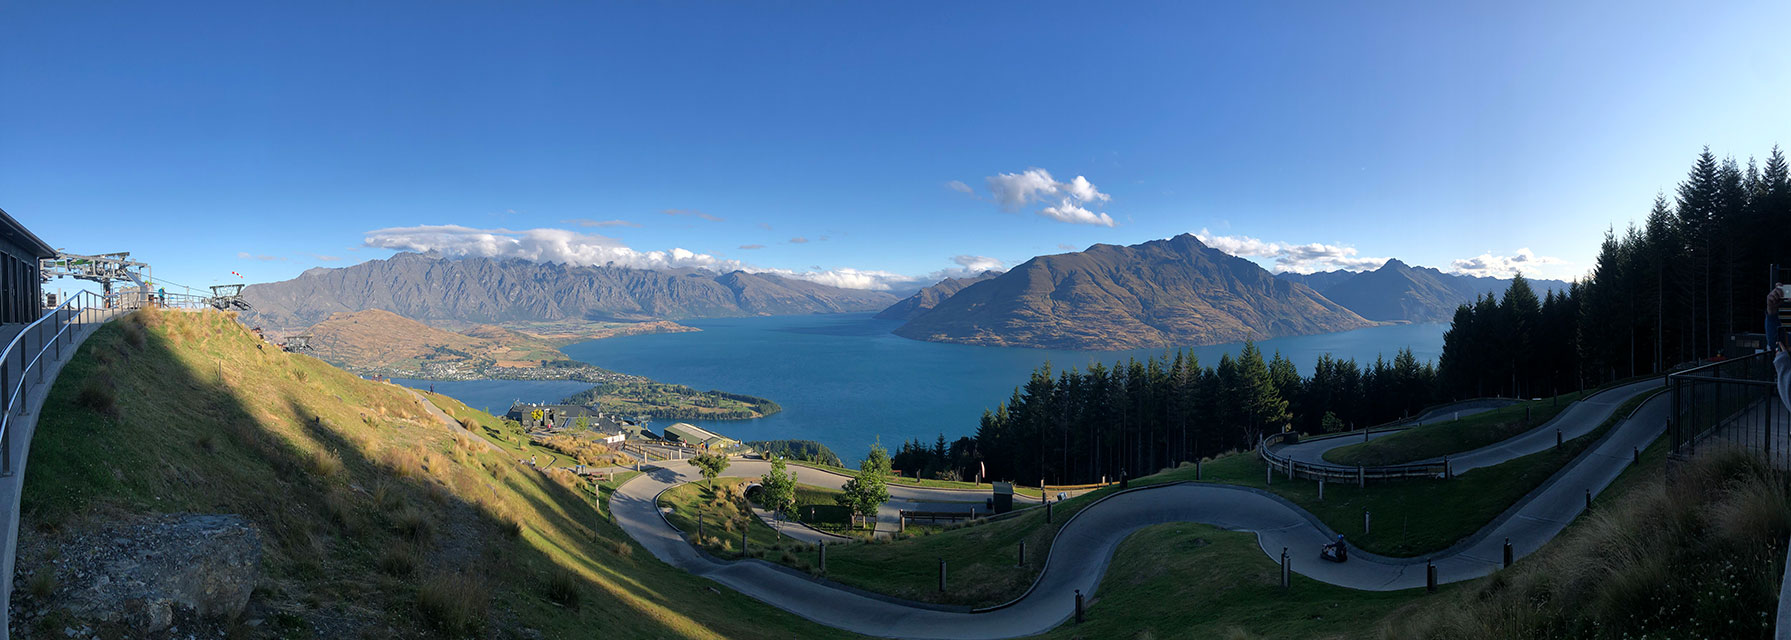 Views from the luge track atop the Queenstown Gondola